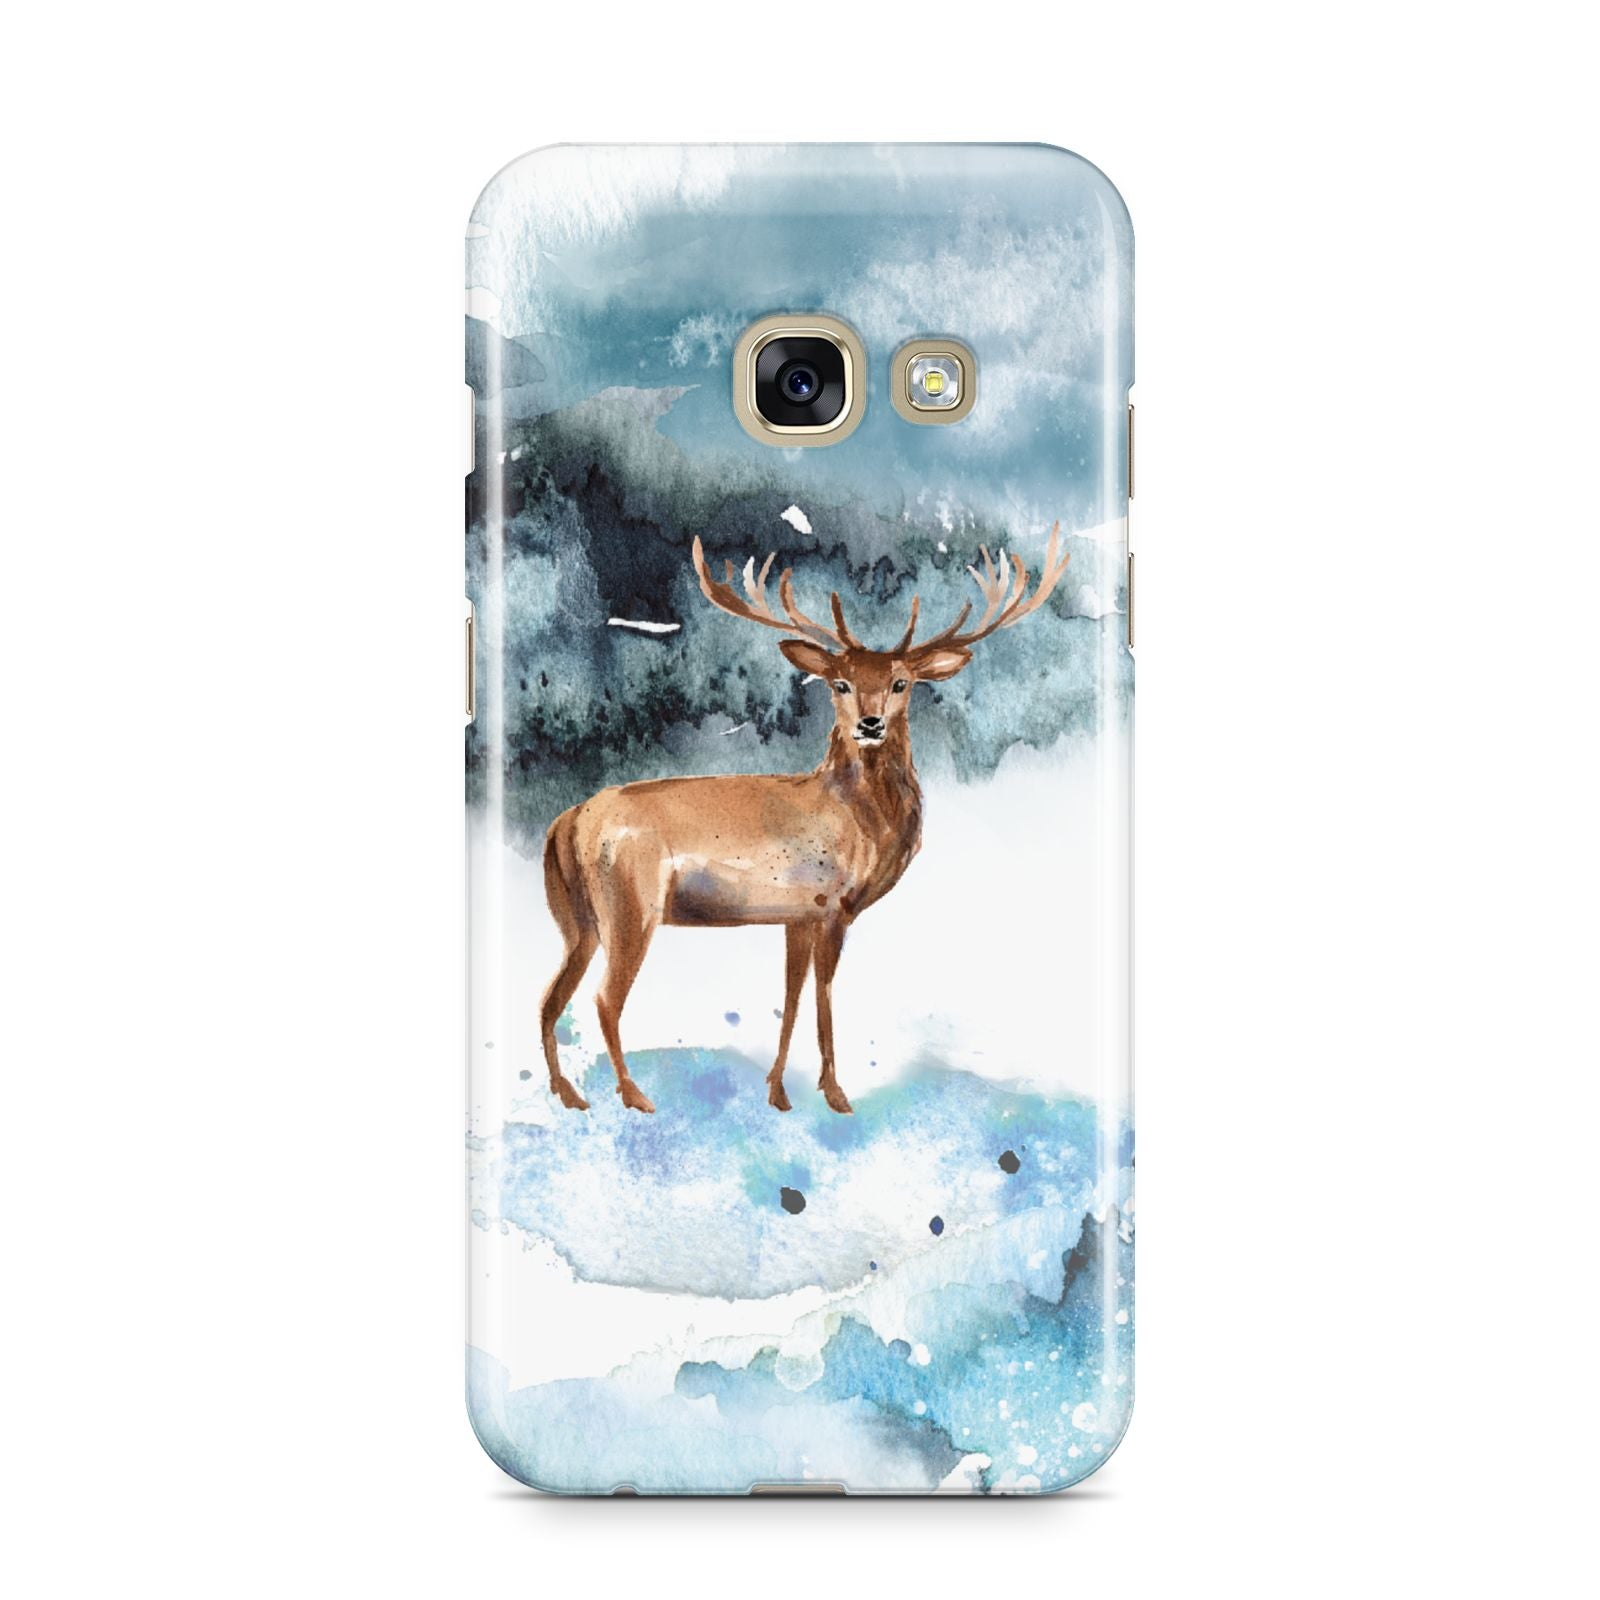 Christmas Winter Stag Samsung Galaxy A3 2017 Case on gold phone